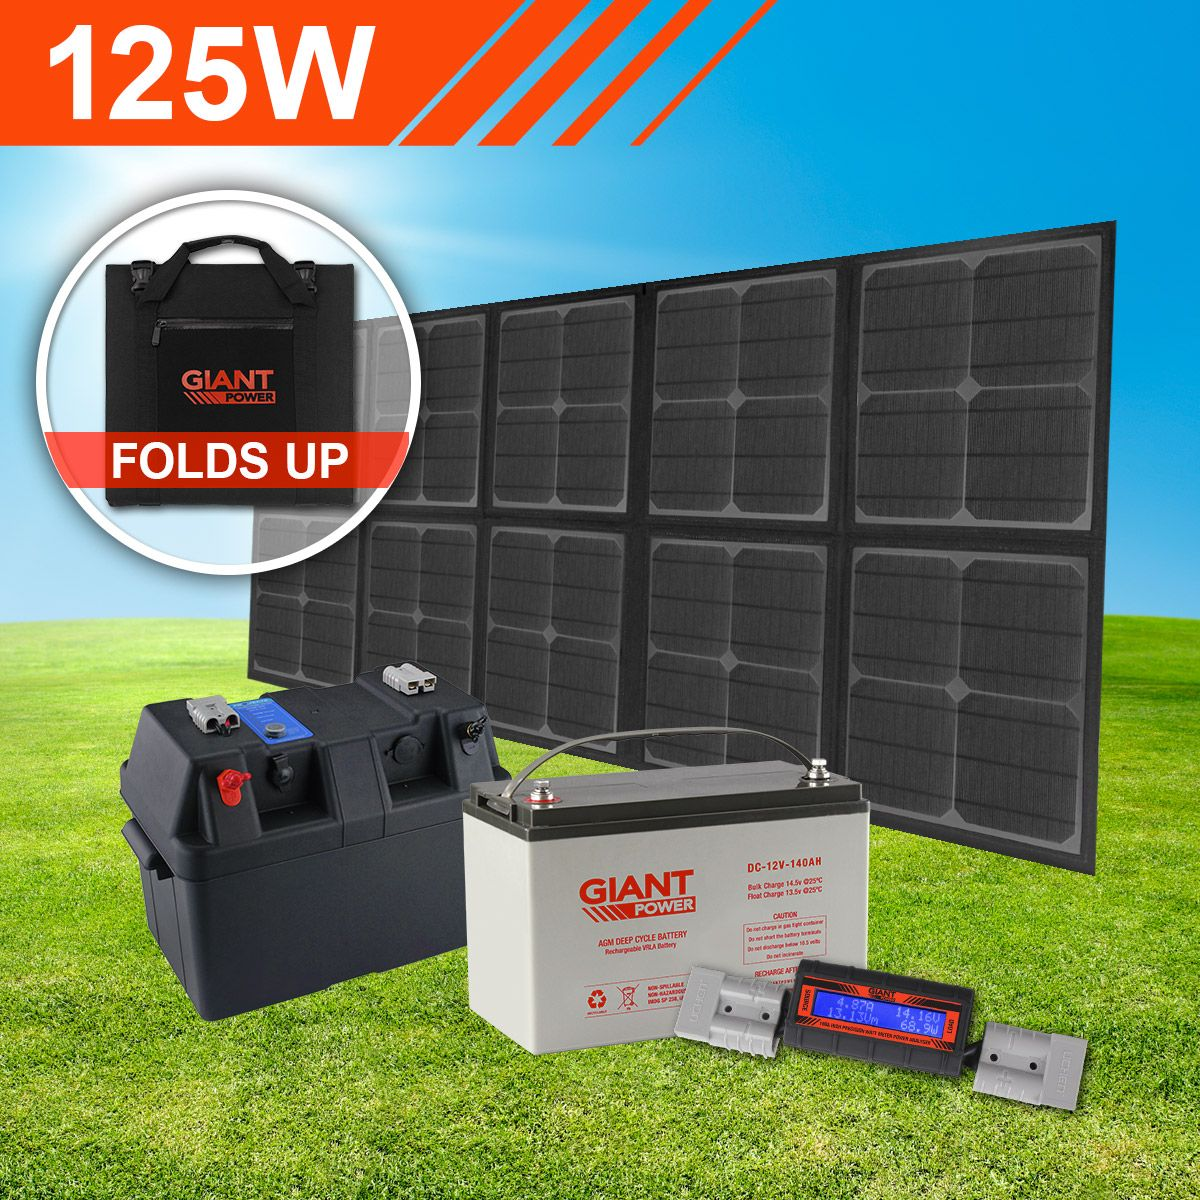 Complete 12v Portable Folding Solar Panel Kit For Camping 125w Folding Solar Panel Kit With Battery In 2020 Solar Panel Kits Solar Kit Solar Panels